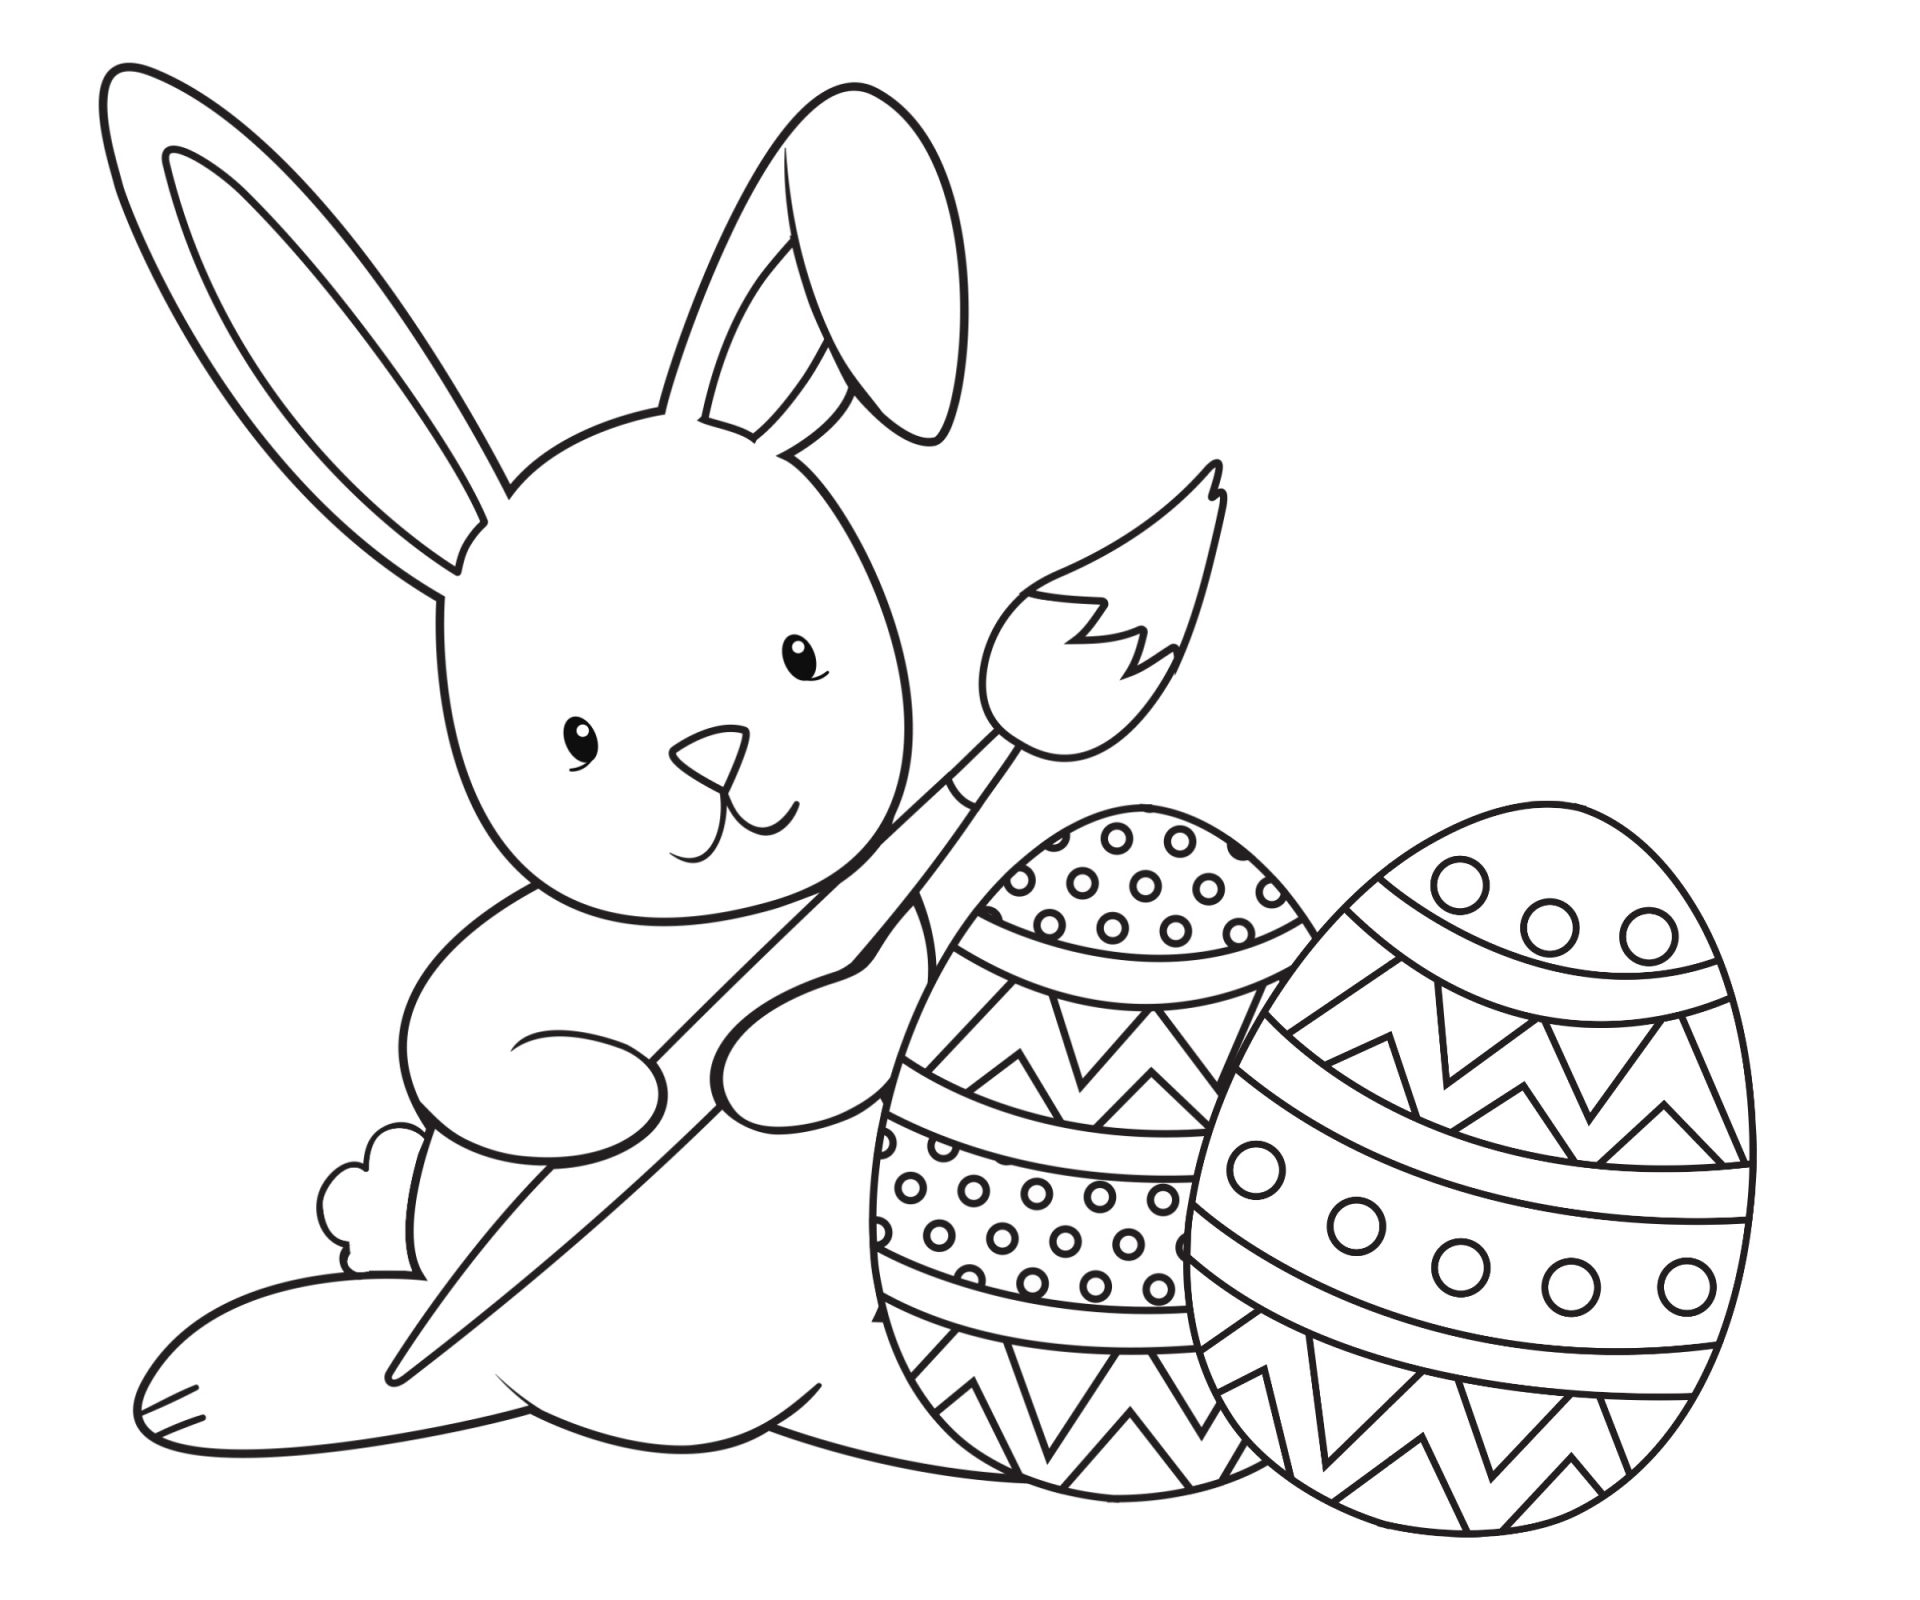 Sunday School Coloring Pages Easter Collection | Free Coloring Sheets